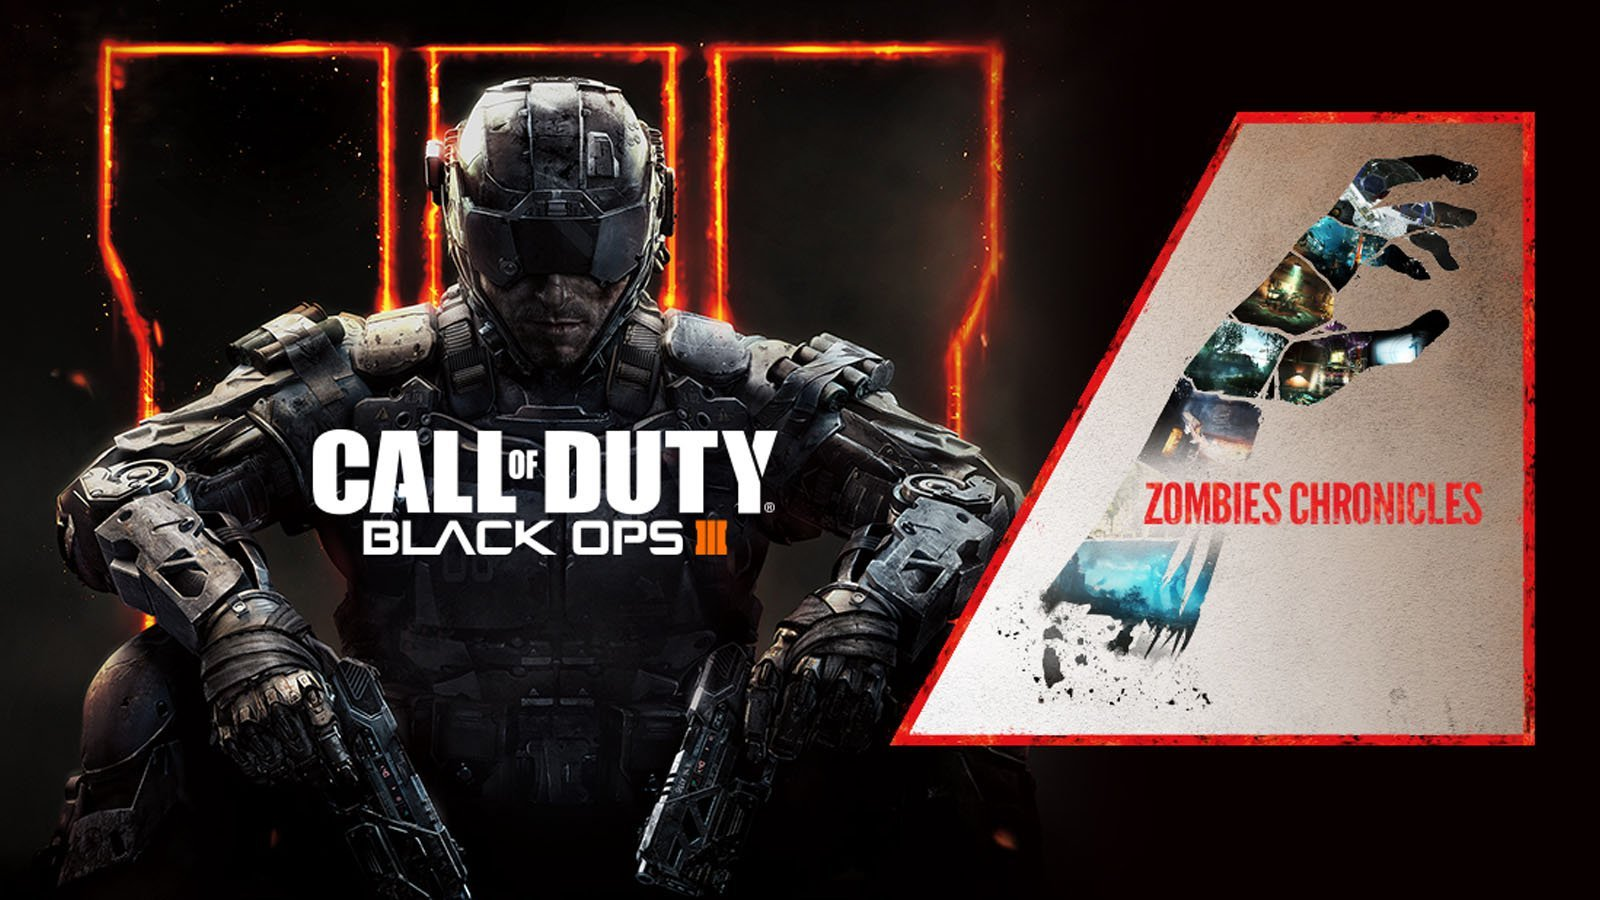 Call Of Duty Black Ops 3 Zombies Chronicles Bundle Available On Ps4 Xbox One And Pc Charlie Intel